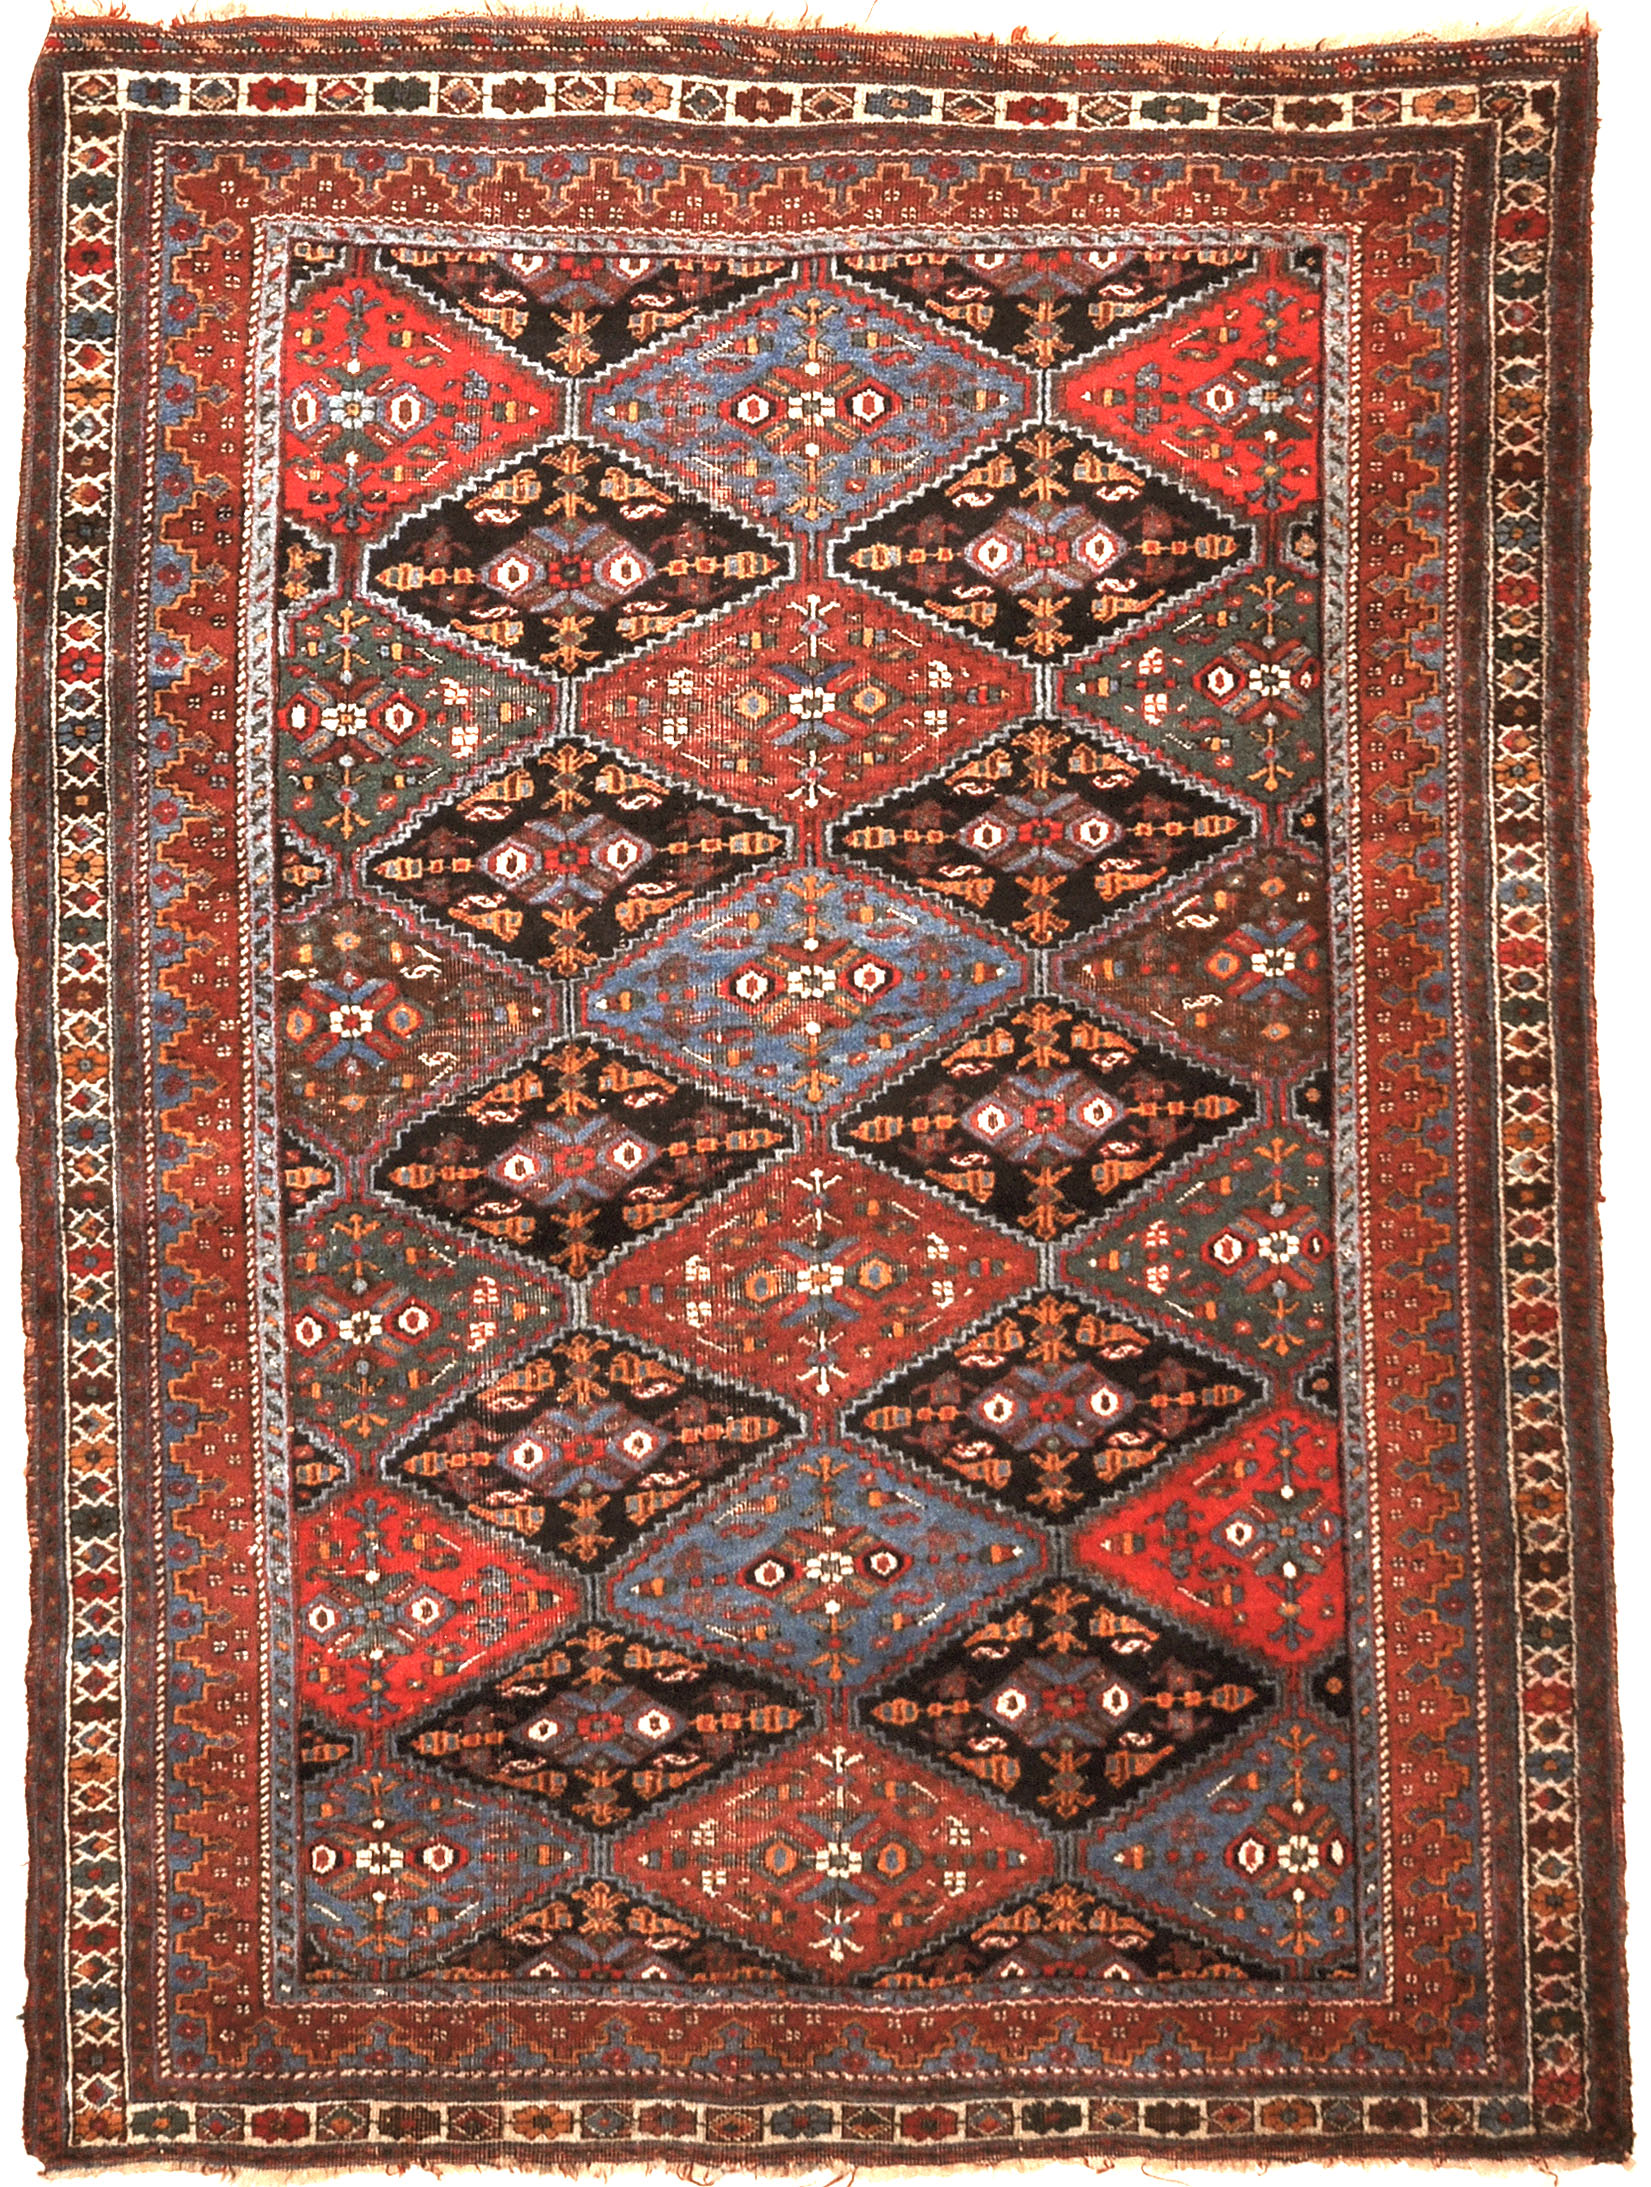 Fine Antique Afshar Rug. A genuine authentic antique piece of woven carpet art sold by Santa Barbara Design Center, Rugs and More.